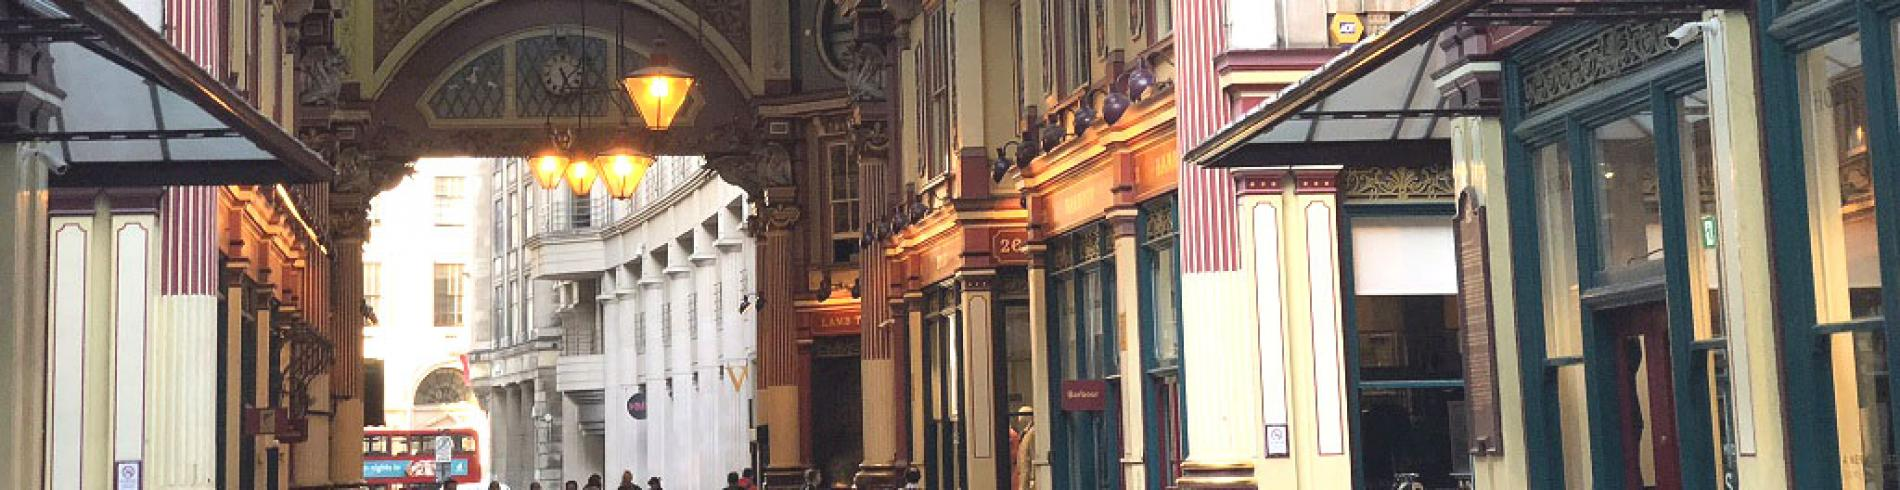 Leadenhall Market, used in the Harry Potter films